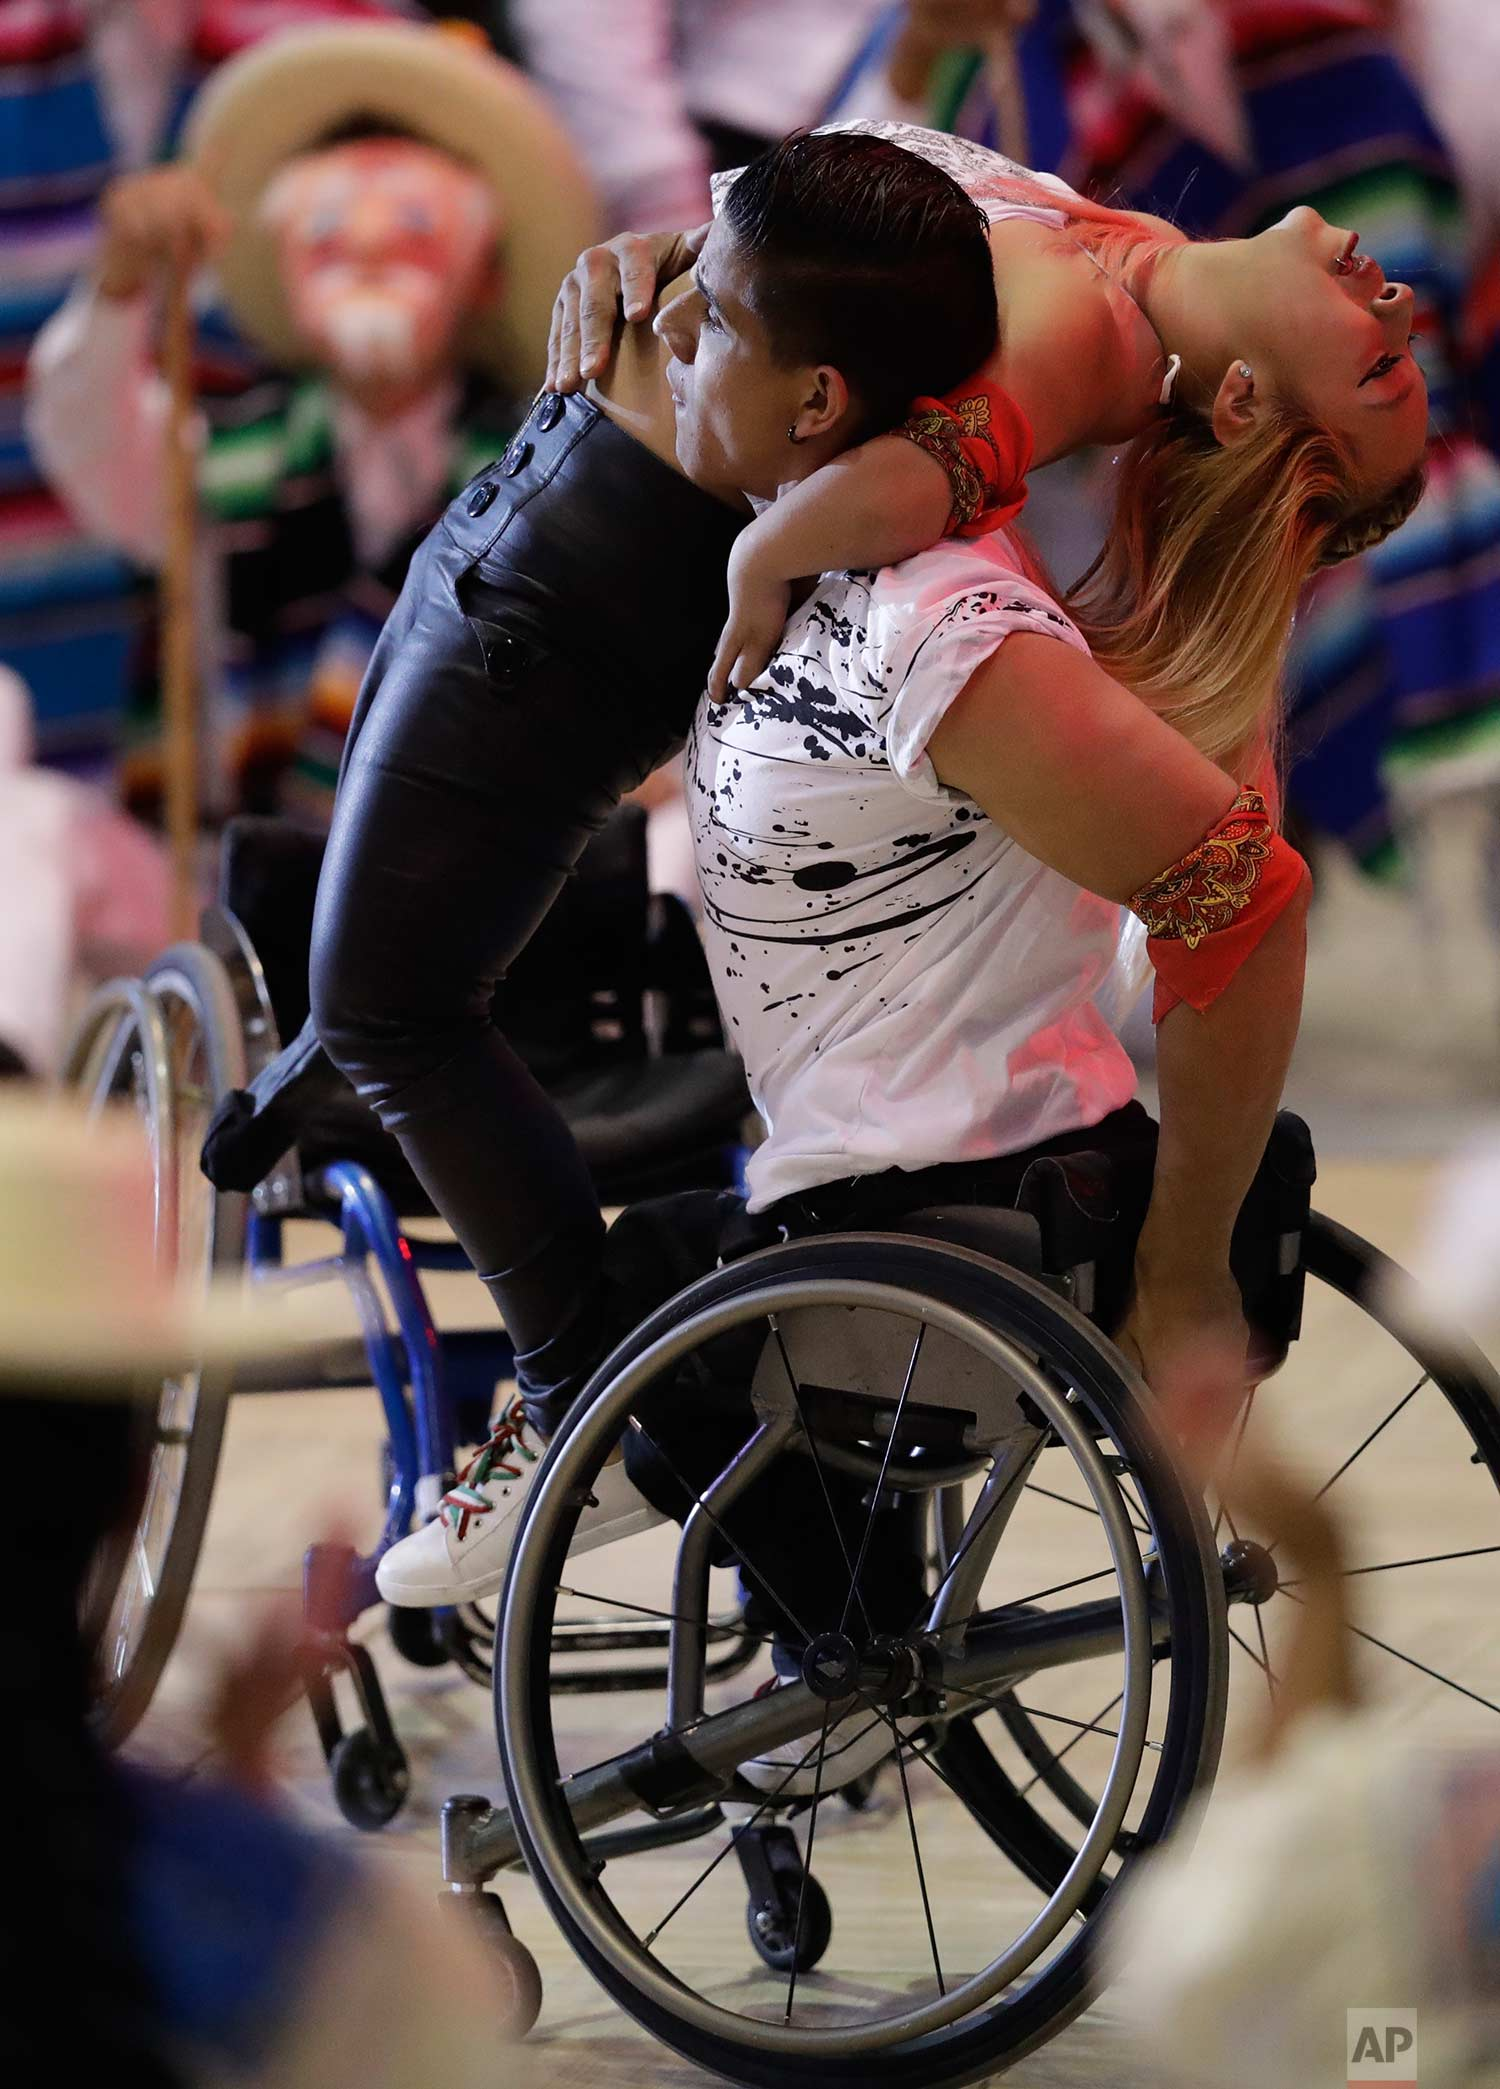 Dancers in wheelchairs perform during the opening ceremony of the World Para Swimming and Para Powerlifting Championships in Mexico City, Saturday, Dec. 2, 2017. (AP Photo/Rebecca Blackwell)